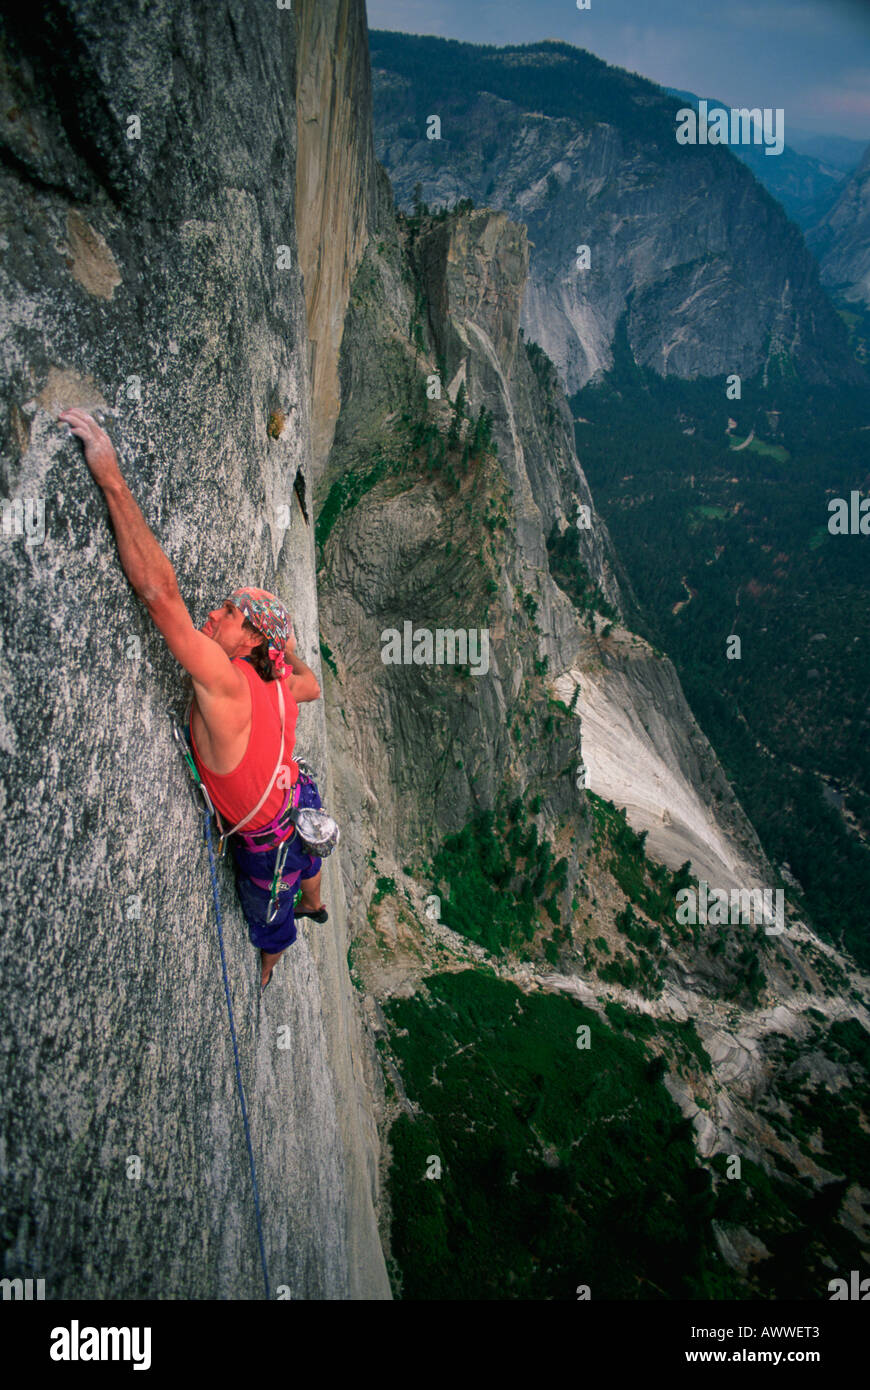 Todd Skinner on first free ascent of direct north-west face of Half Dome, California, United States - Stock Image